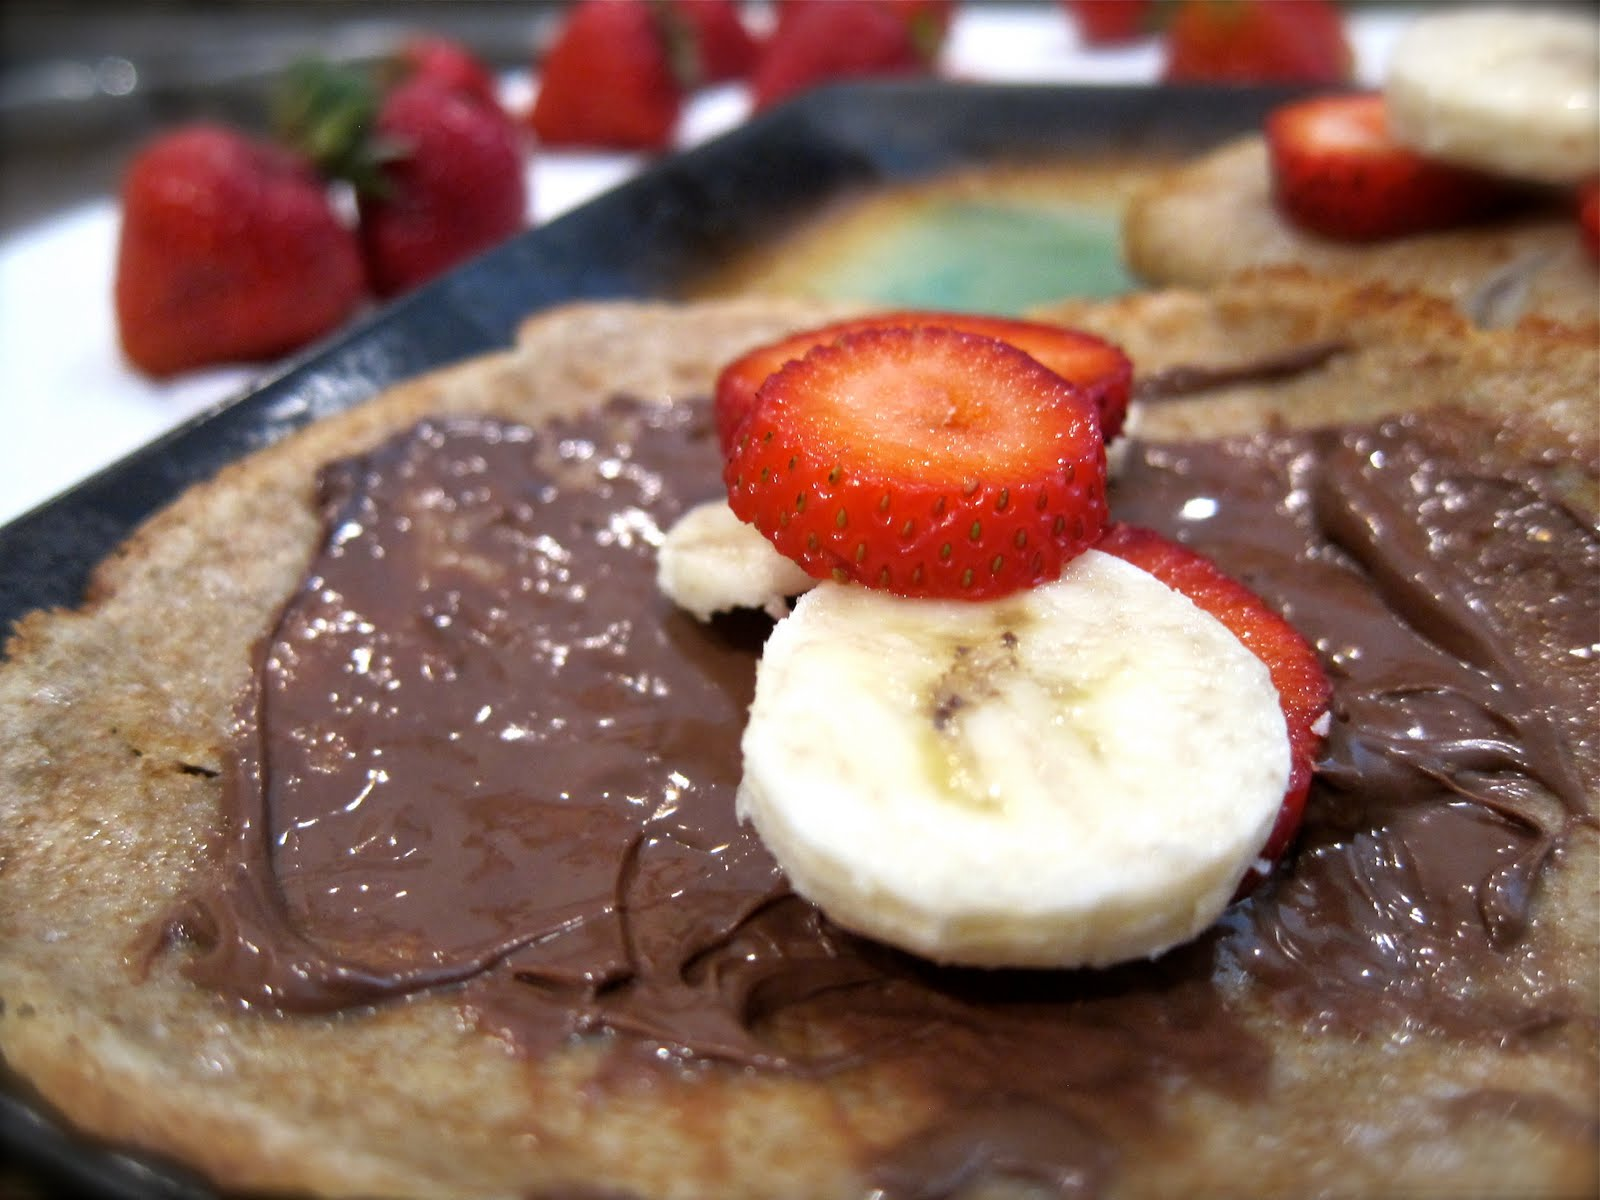 Saleena: Strawberry & Banana Nutella Crepes